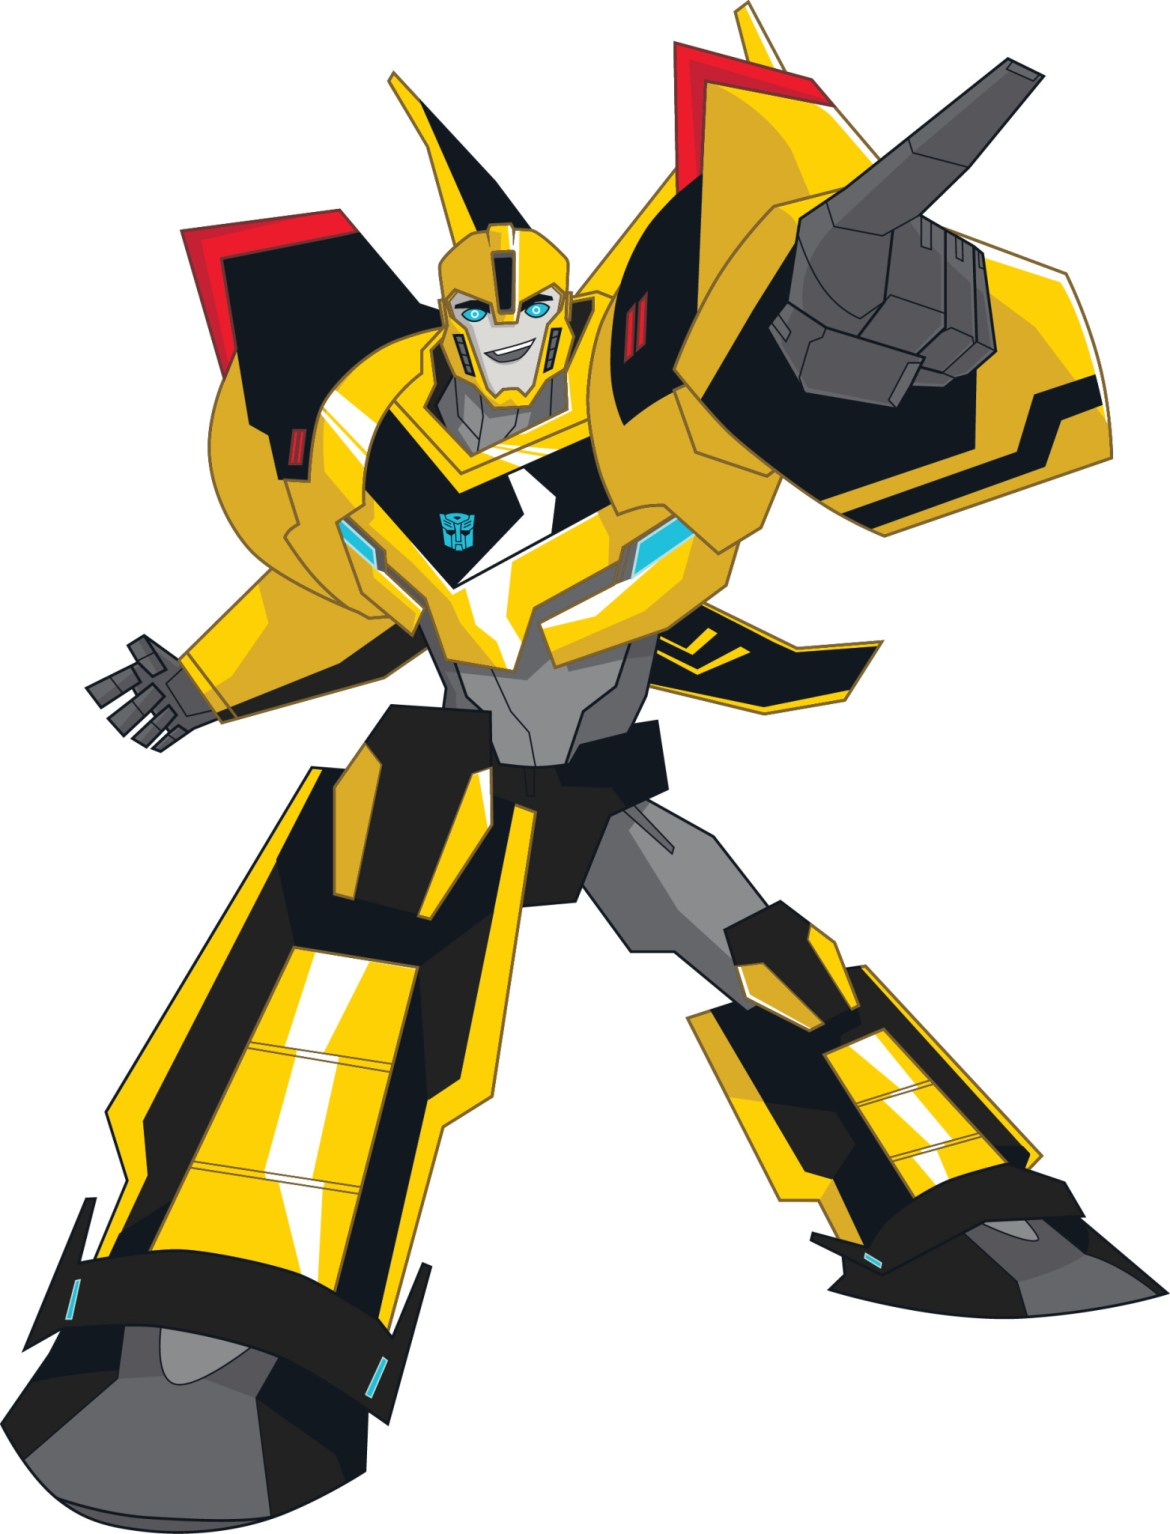 Brand New Transformers Series in Production for The Hub Network